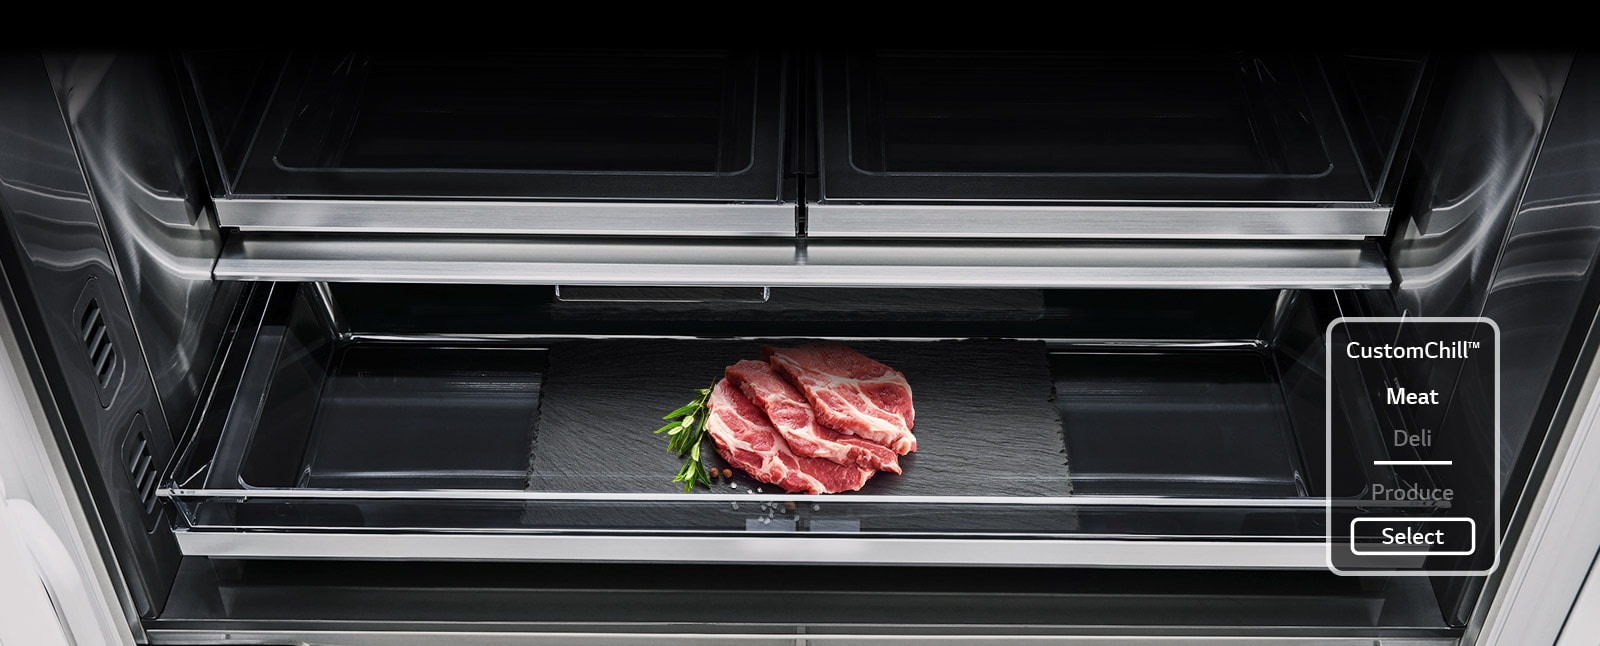 Custom Chill™ Pantry drawer and close up of different produce temperature settings